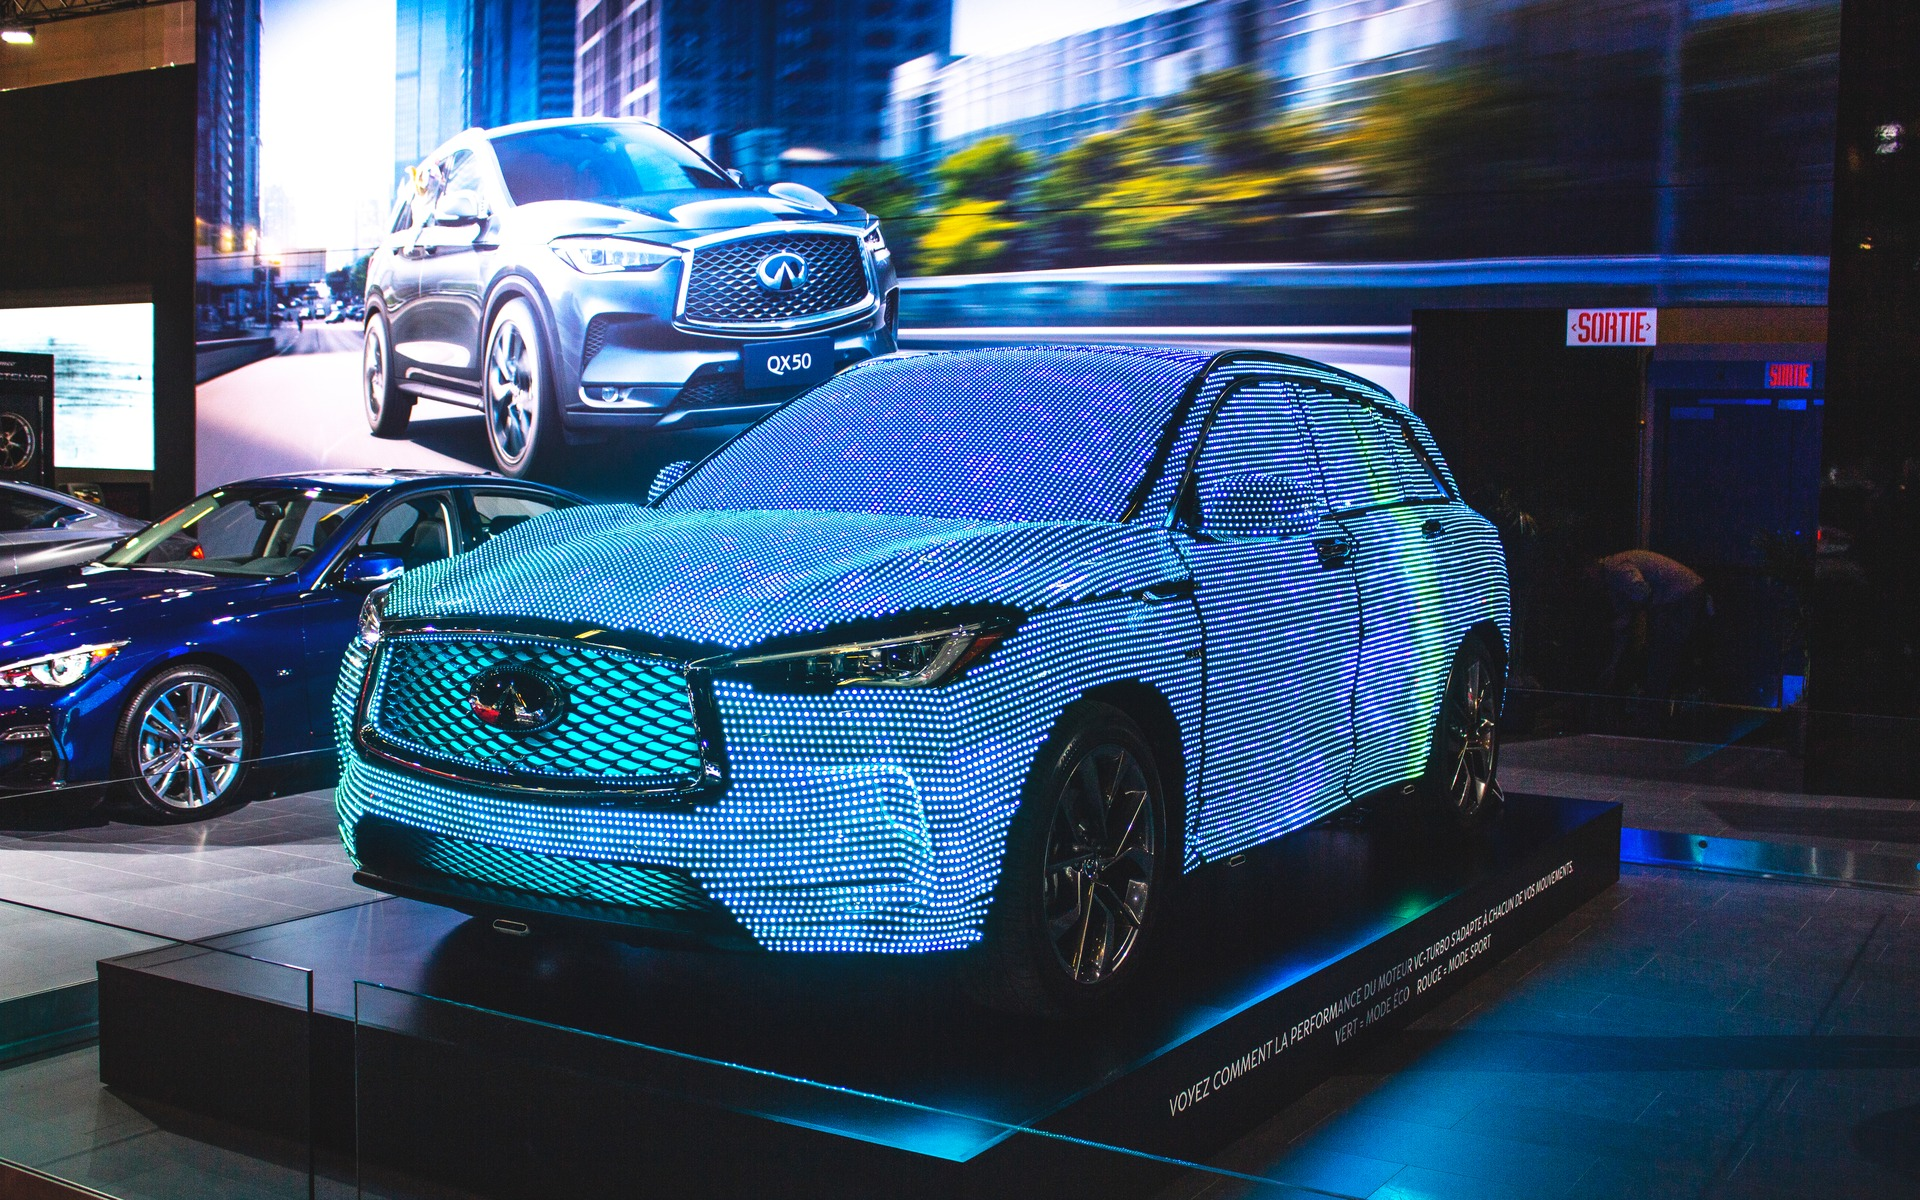 Infiniti QX50 at the 2019 Montreal Auto Show